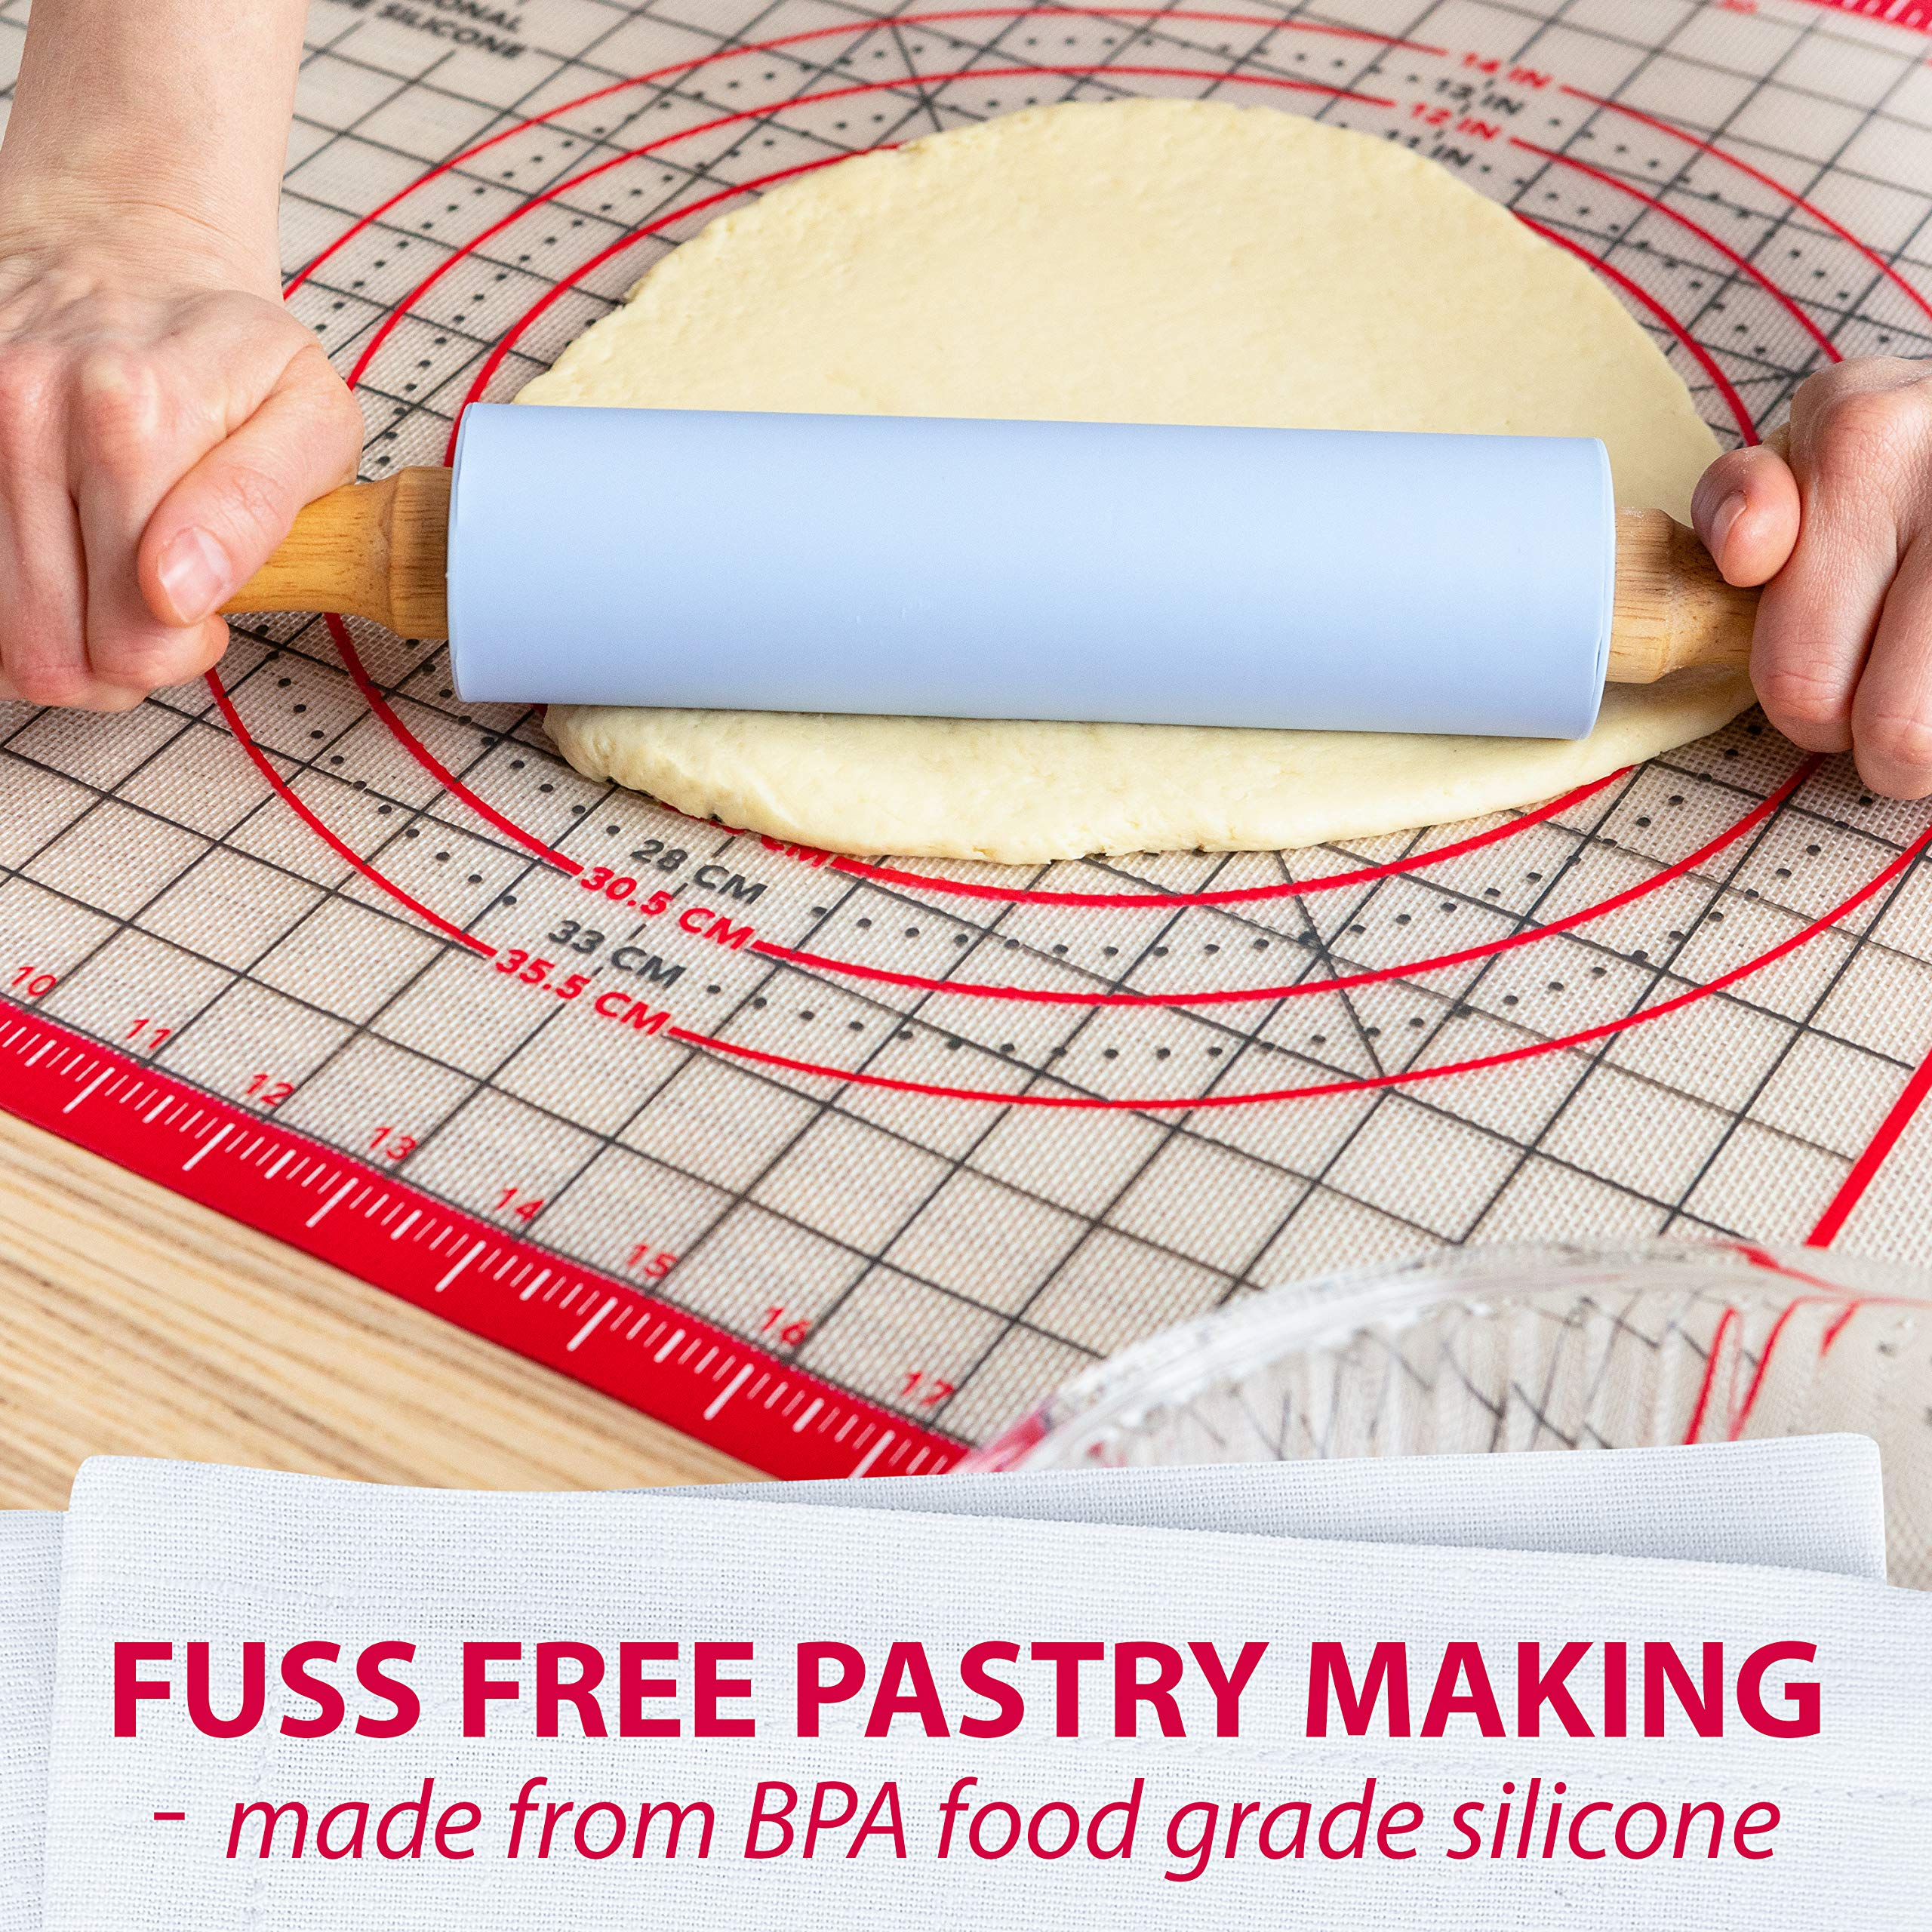 Pastry Mat Silicone Non Slip - Extra Large Thick Non Stick Silicone Baking Mat For Rolling Dough Pie Crust Fondant Pizza and Cookies - Heavy Duty Easy Clean Kneading Mat With Measurements - 20'' x 28'' by Kitzini (Image #7)